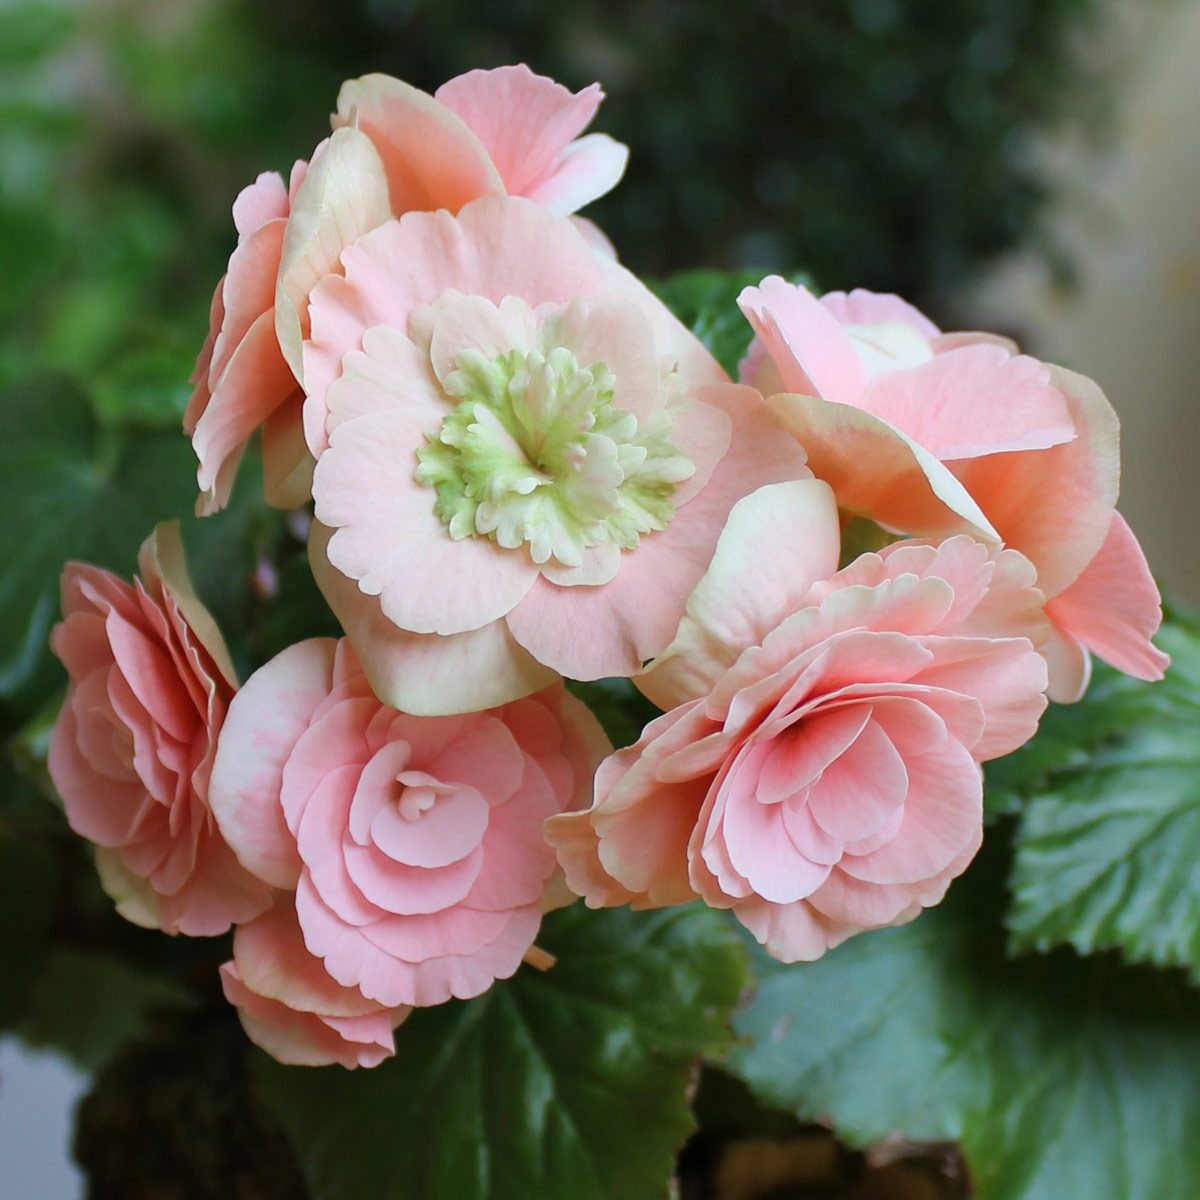 Blooming Begonia tuberhybrida close up